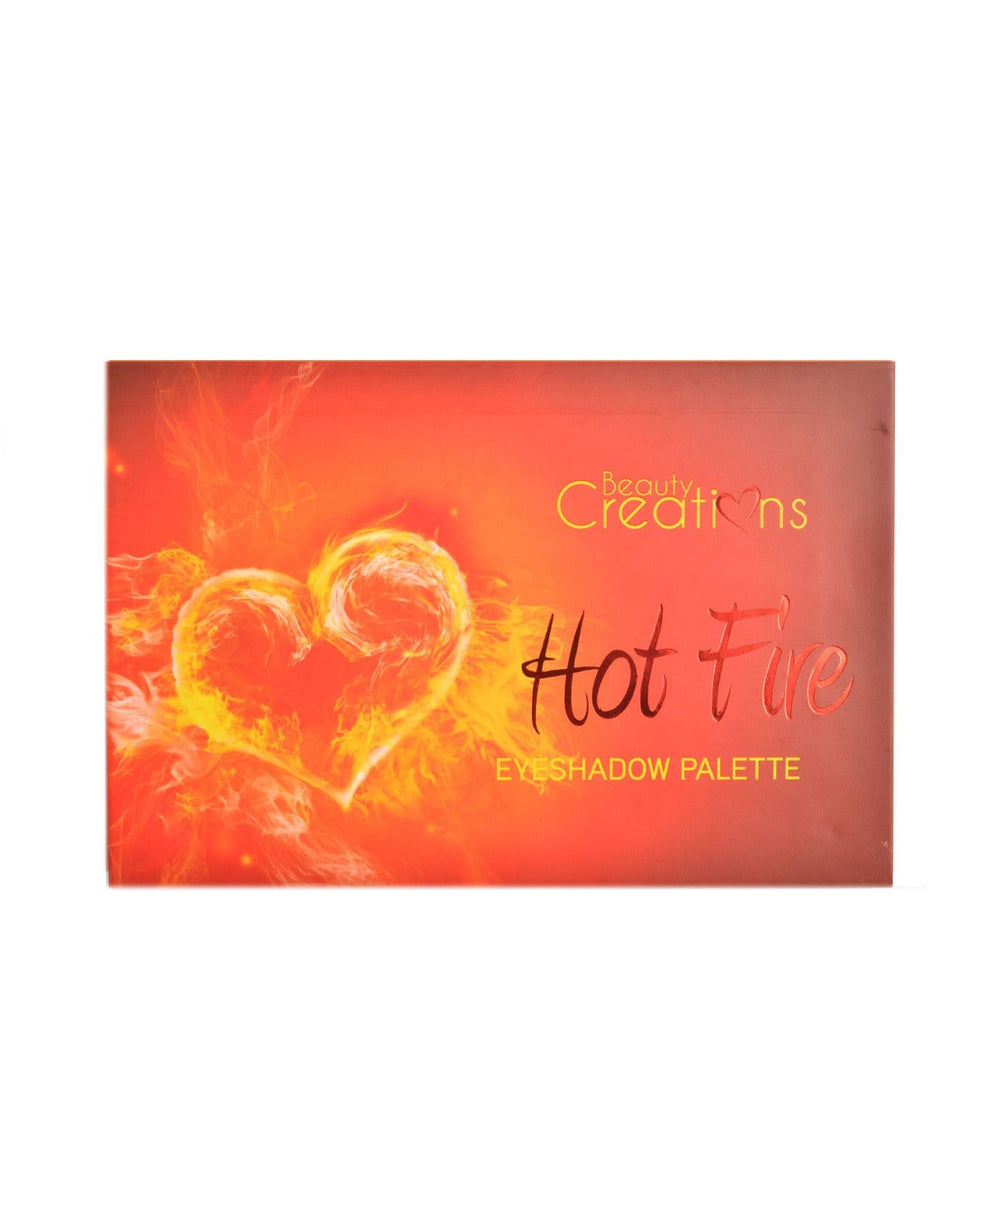 Beauty Creations Hot Fire - Eyeshadow Palette